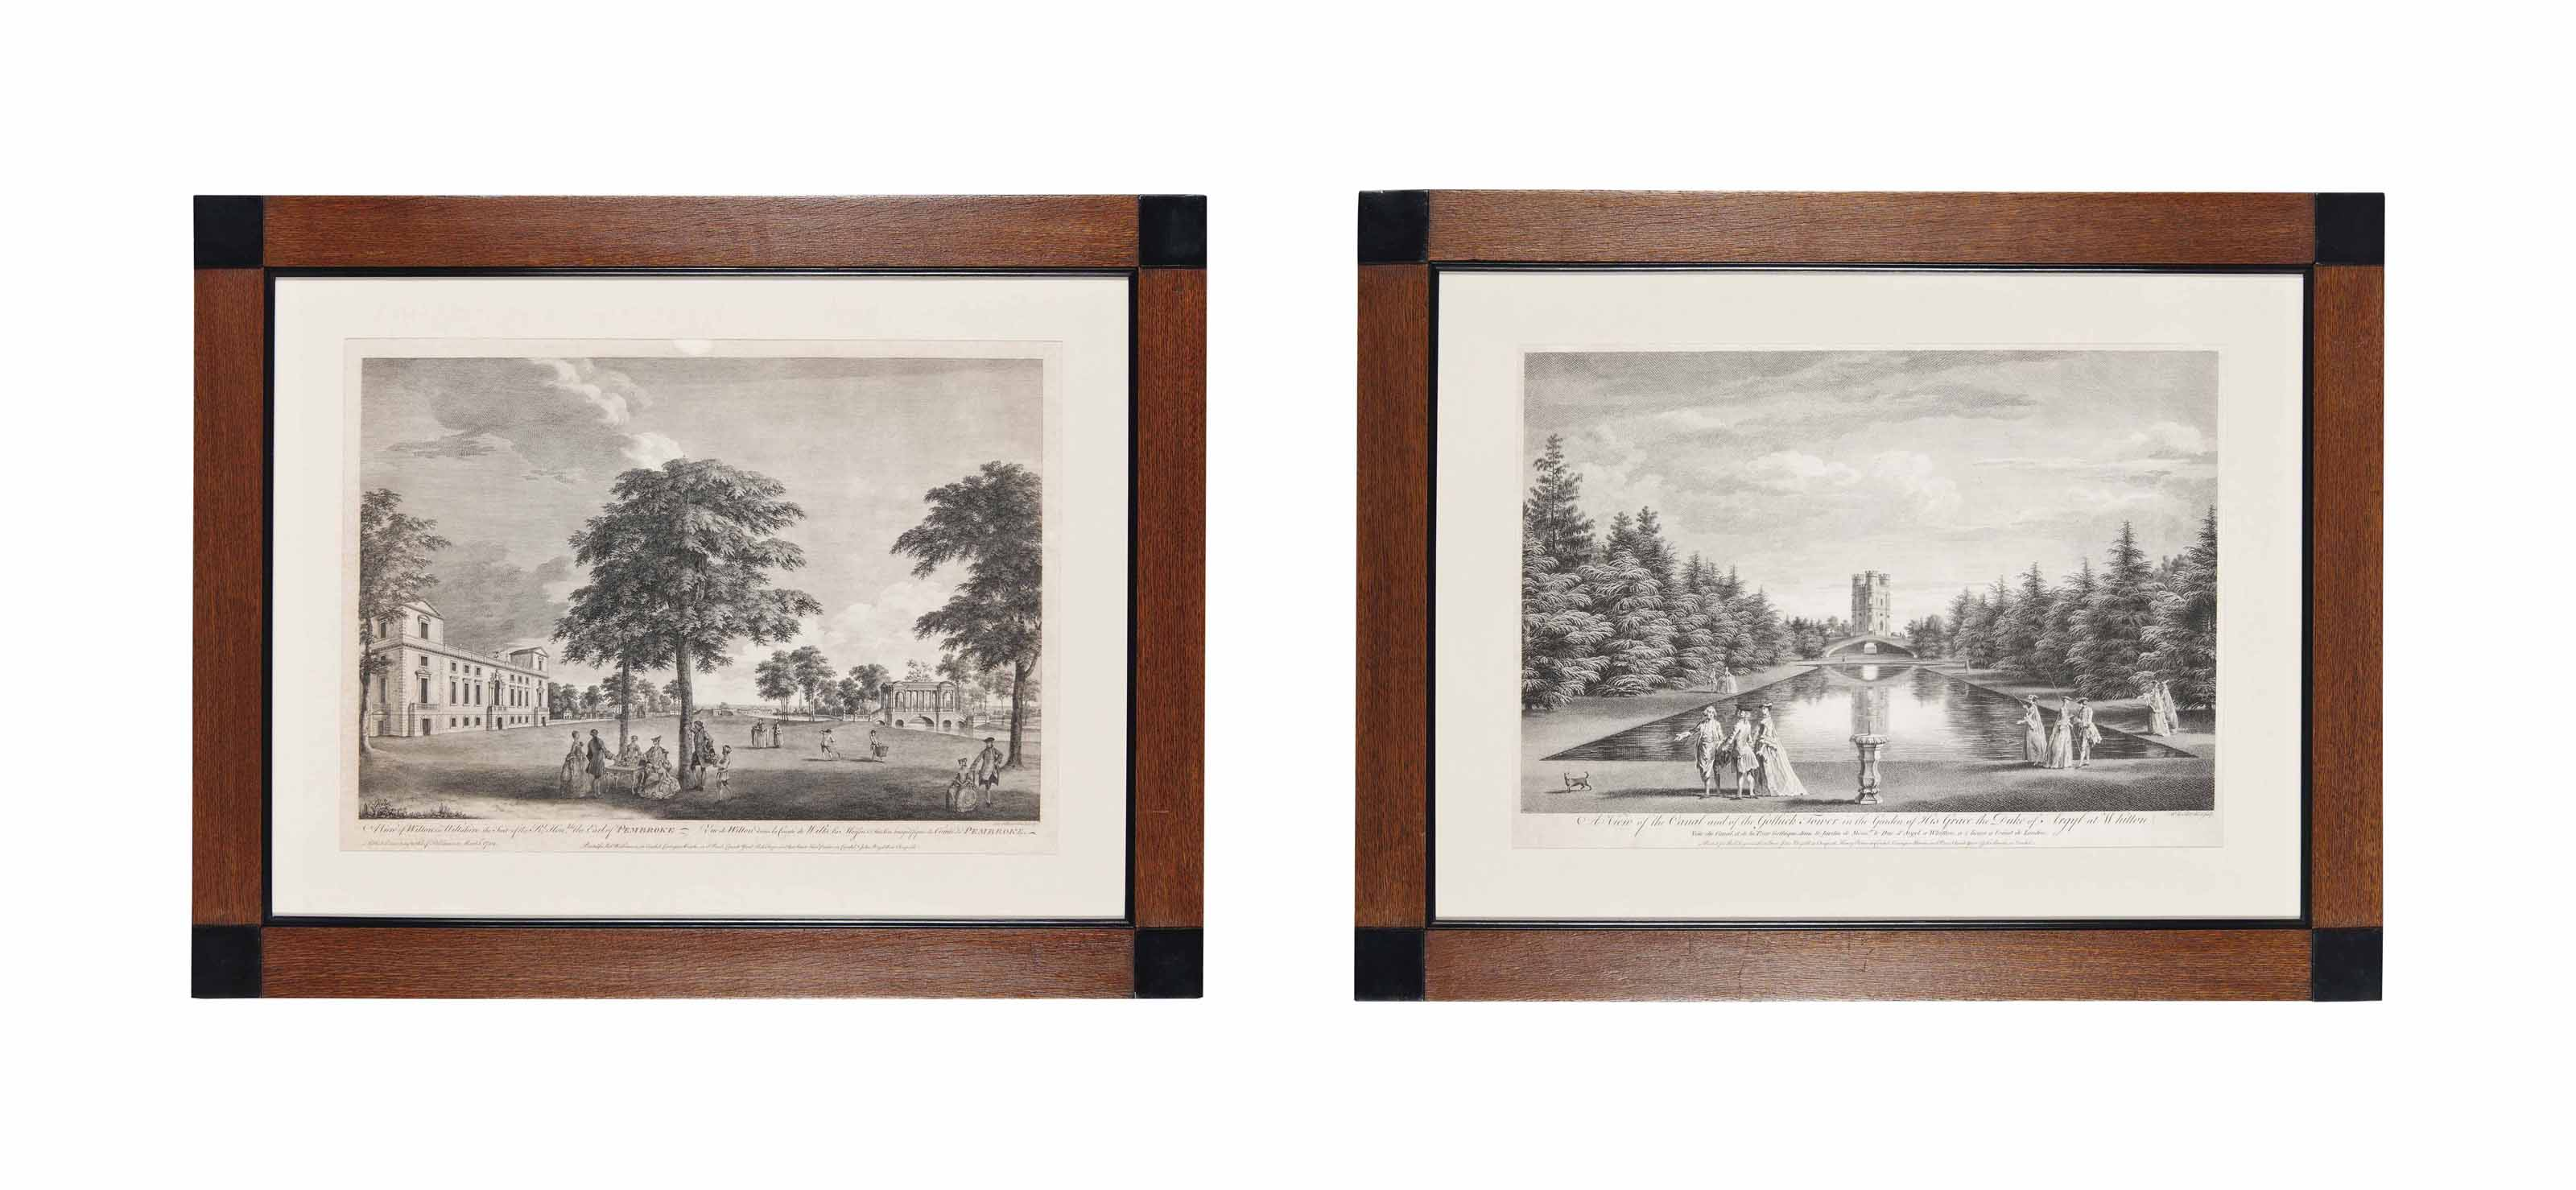 FOUR GEORGE III ENGRAVINGS OF VIEWS FROM ENGLISH COUNTRY HOUSES